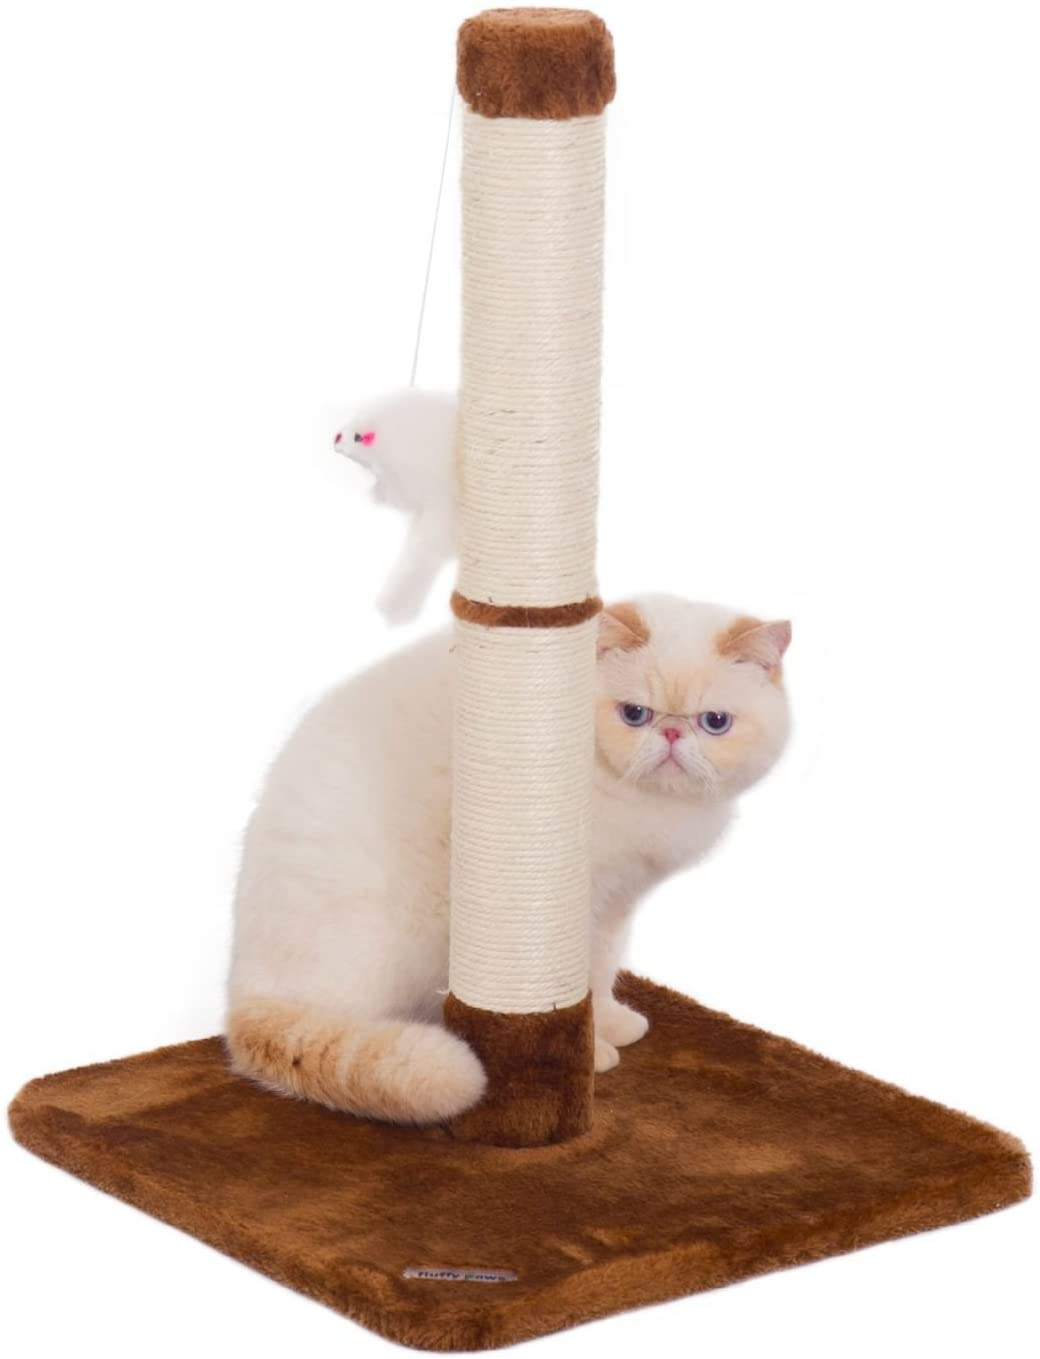 Fluffy Paws Scratching Post, Durable Sisal Wrapped, Cat Kitten Scratcher with Mouse Moving Cats Toy, Keep Claws Active & Protect Your Furniture [25 x 16 x 16] w/Carpeted Based Play Area, Brown